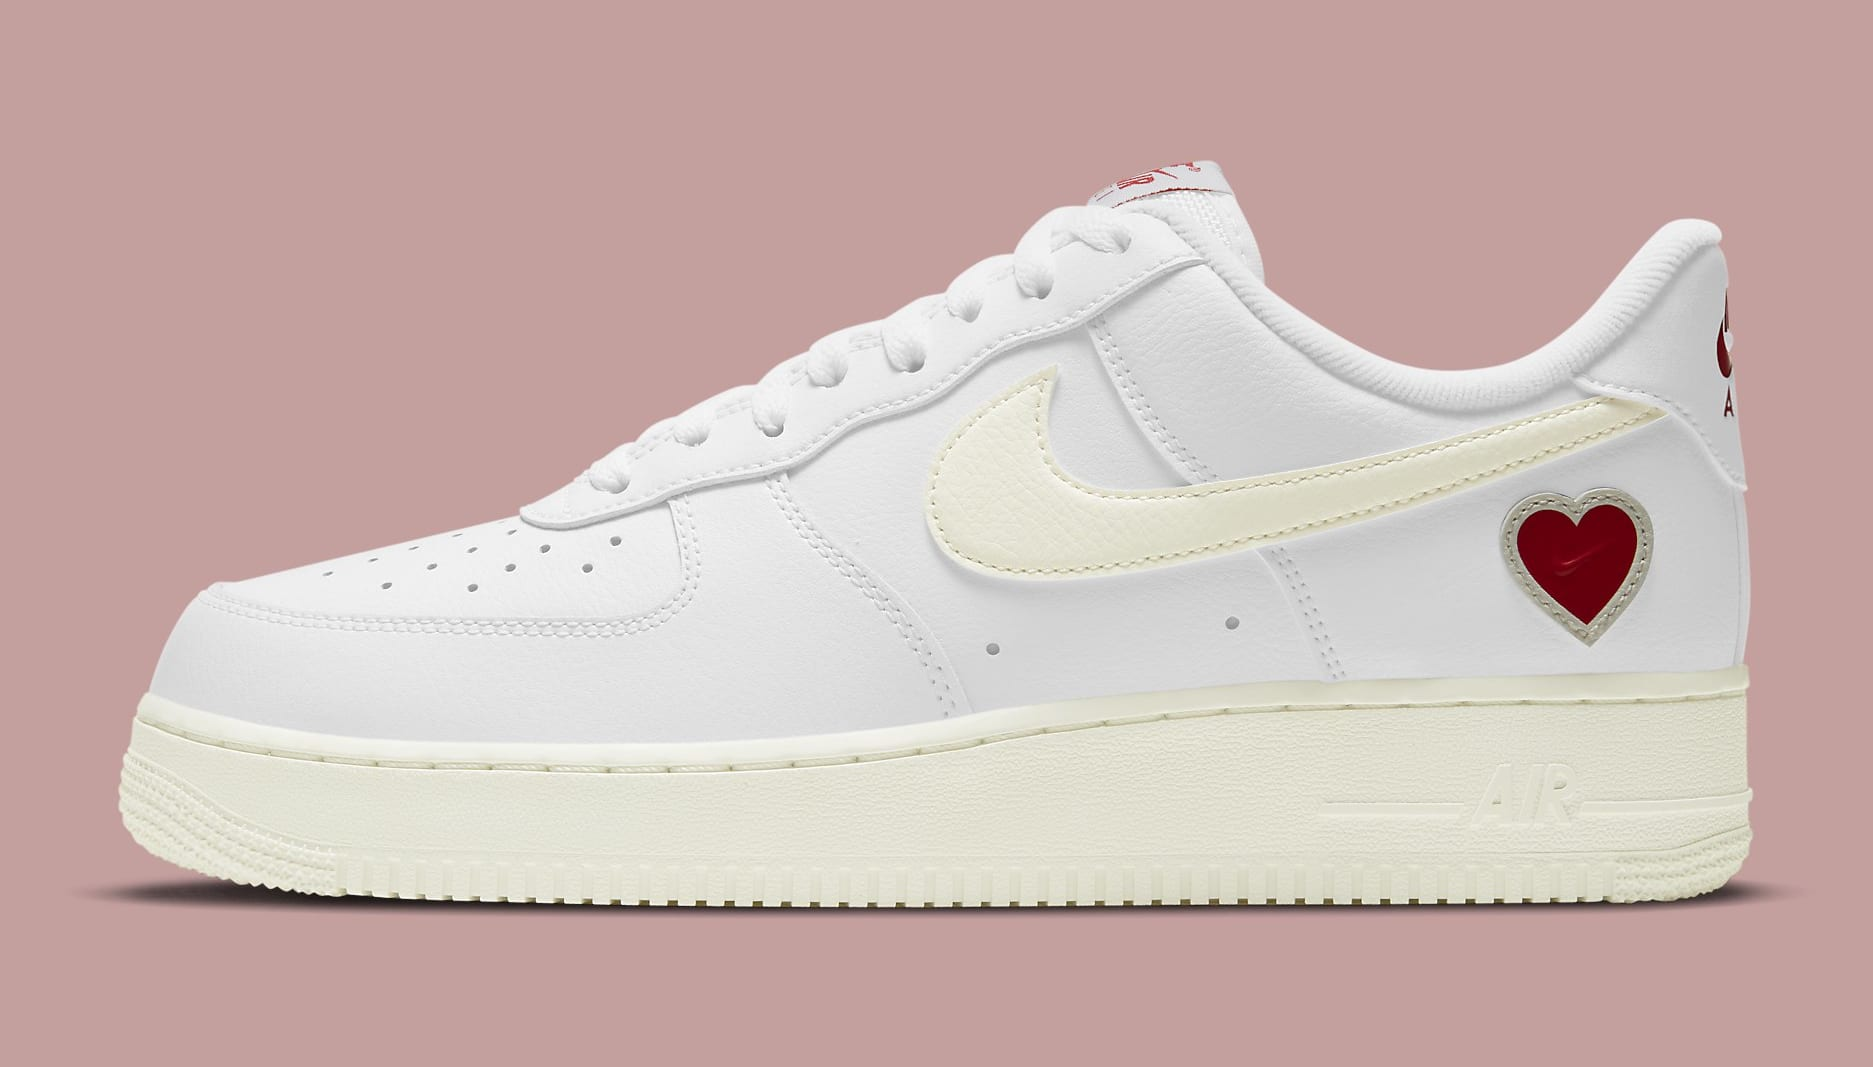 Nike Air Force 1 Low Valentine's Day 2021 Release Date DD7117-100 Profile